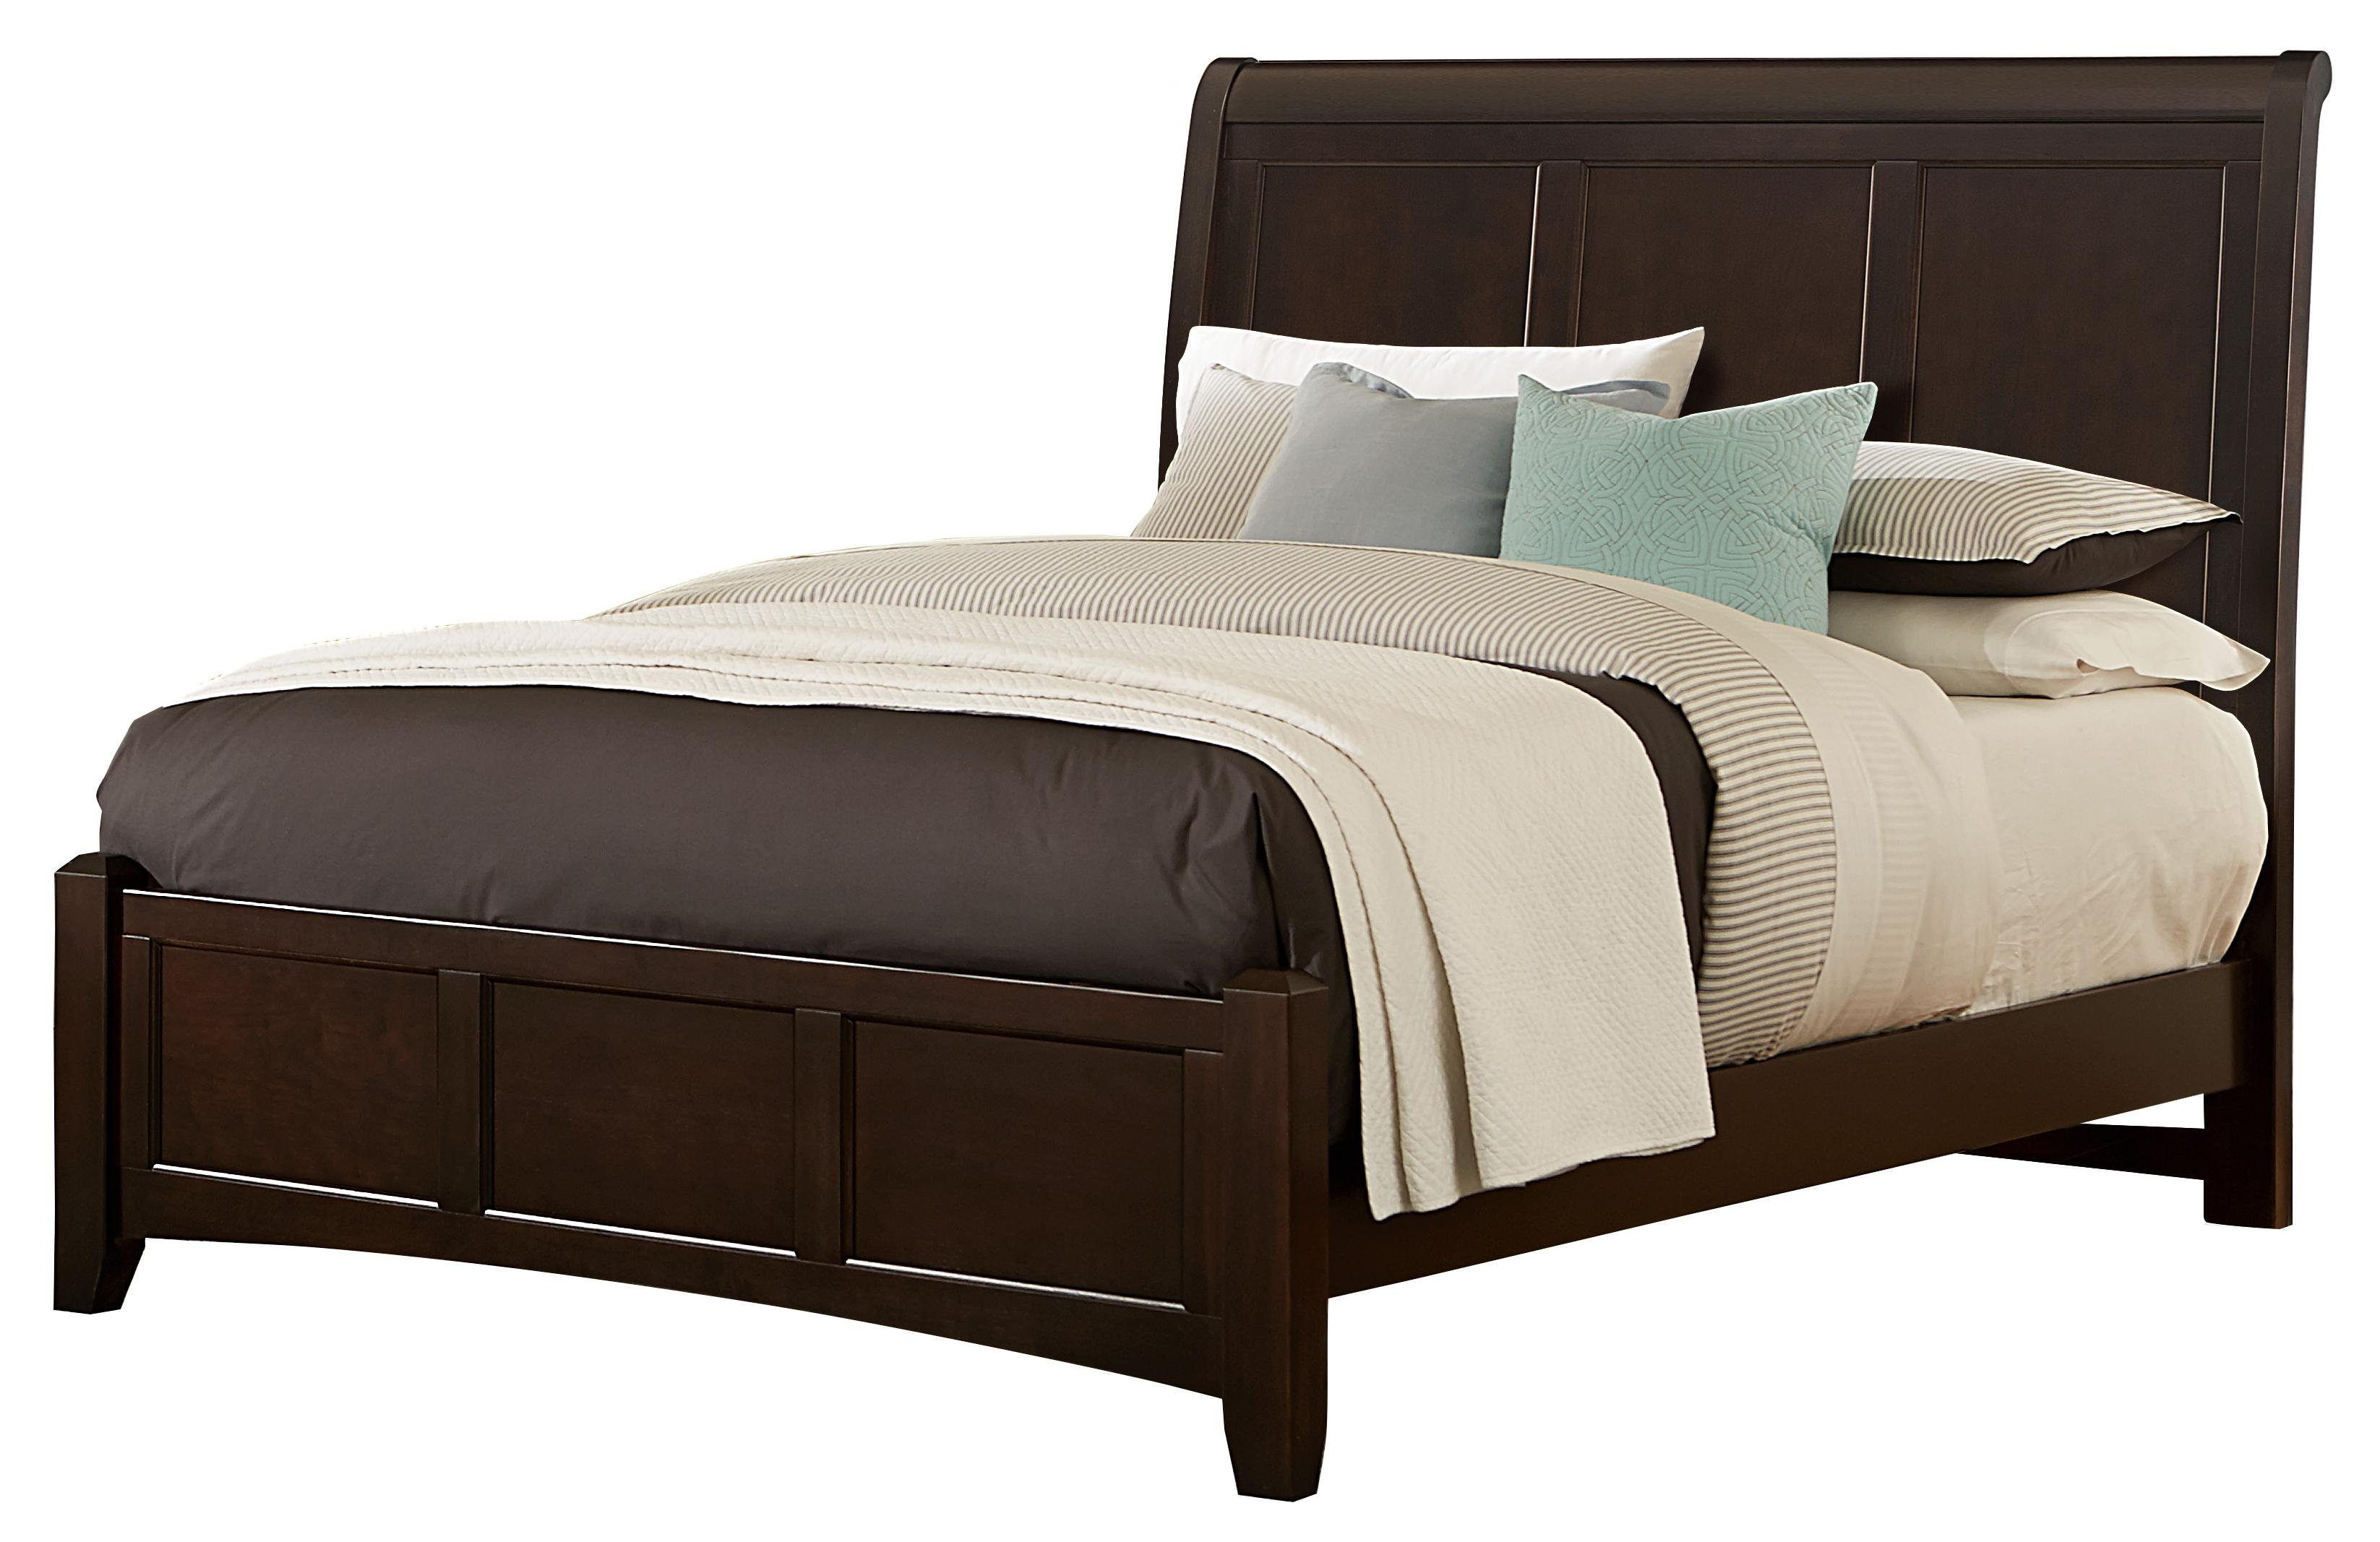 Vaughan Bassett Bonanza Queen Sleigh Bed with Low Profile Footboard - Item Number: BB27-553+855+922